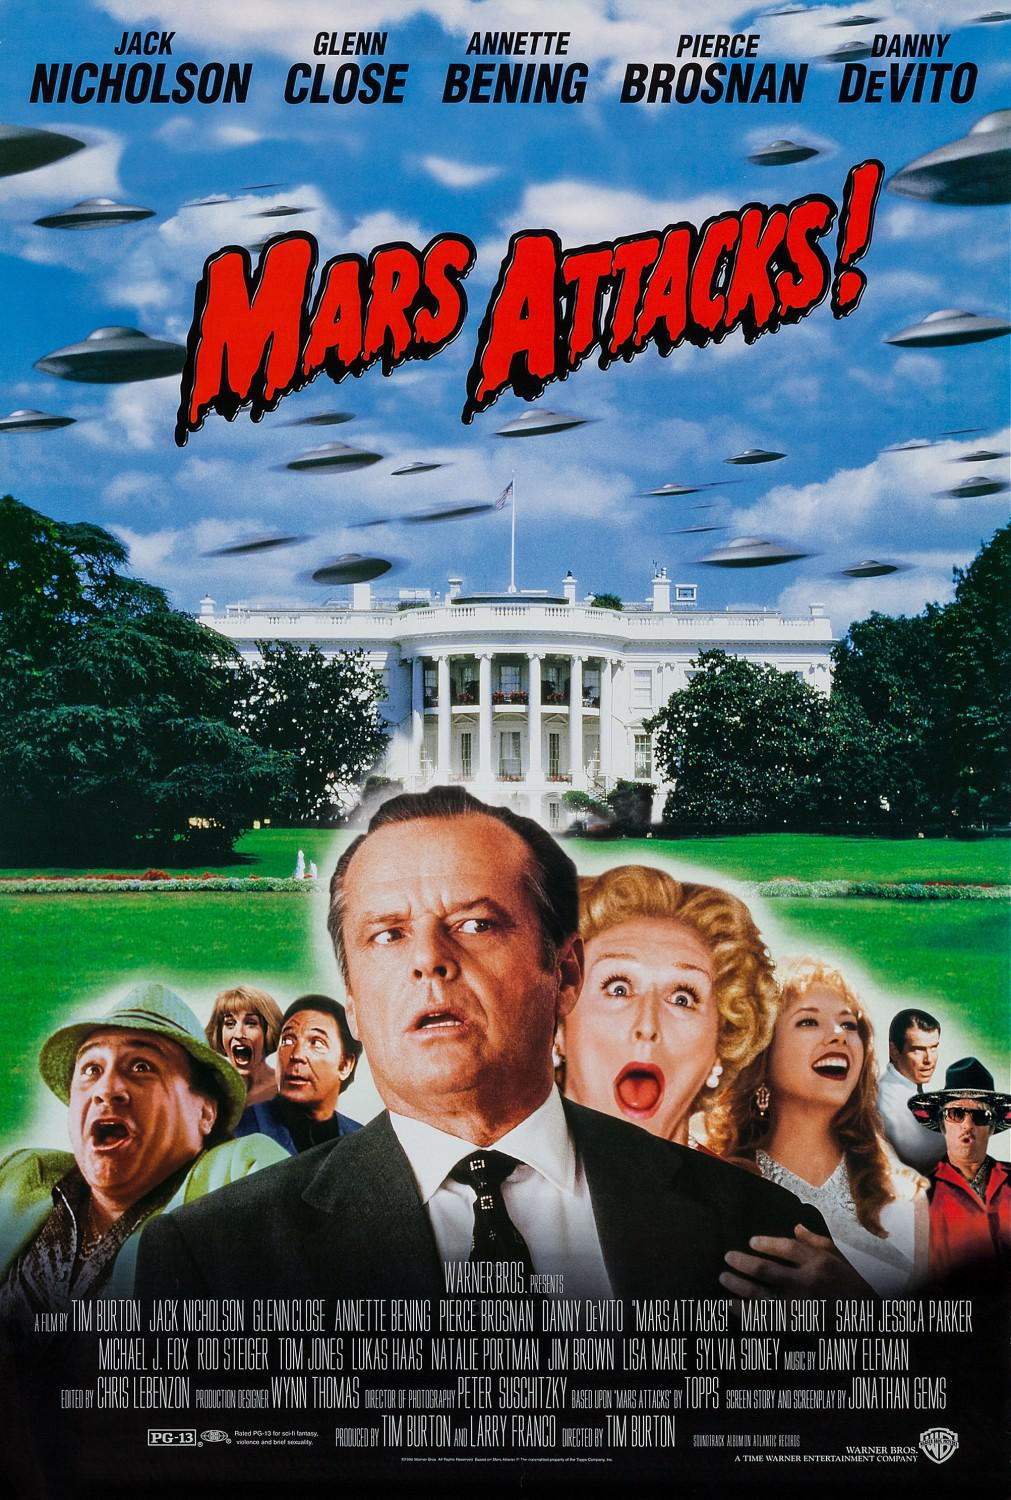 Mars Attacks - film poster - Jack Nicholson